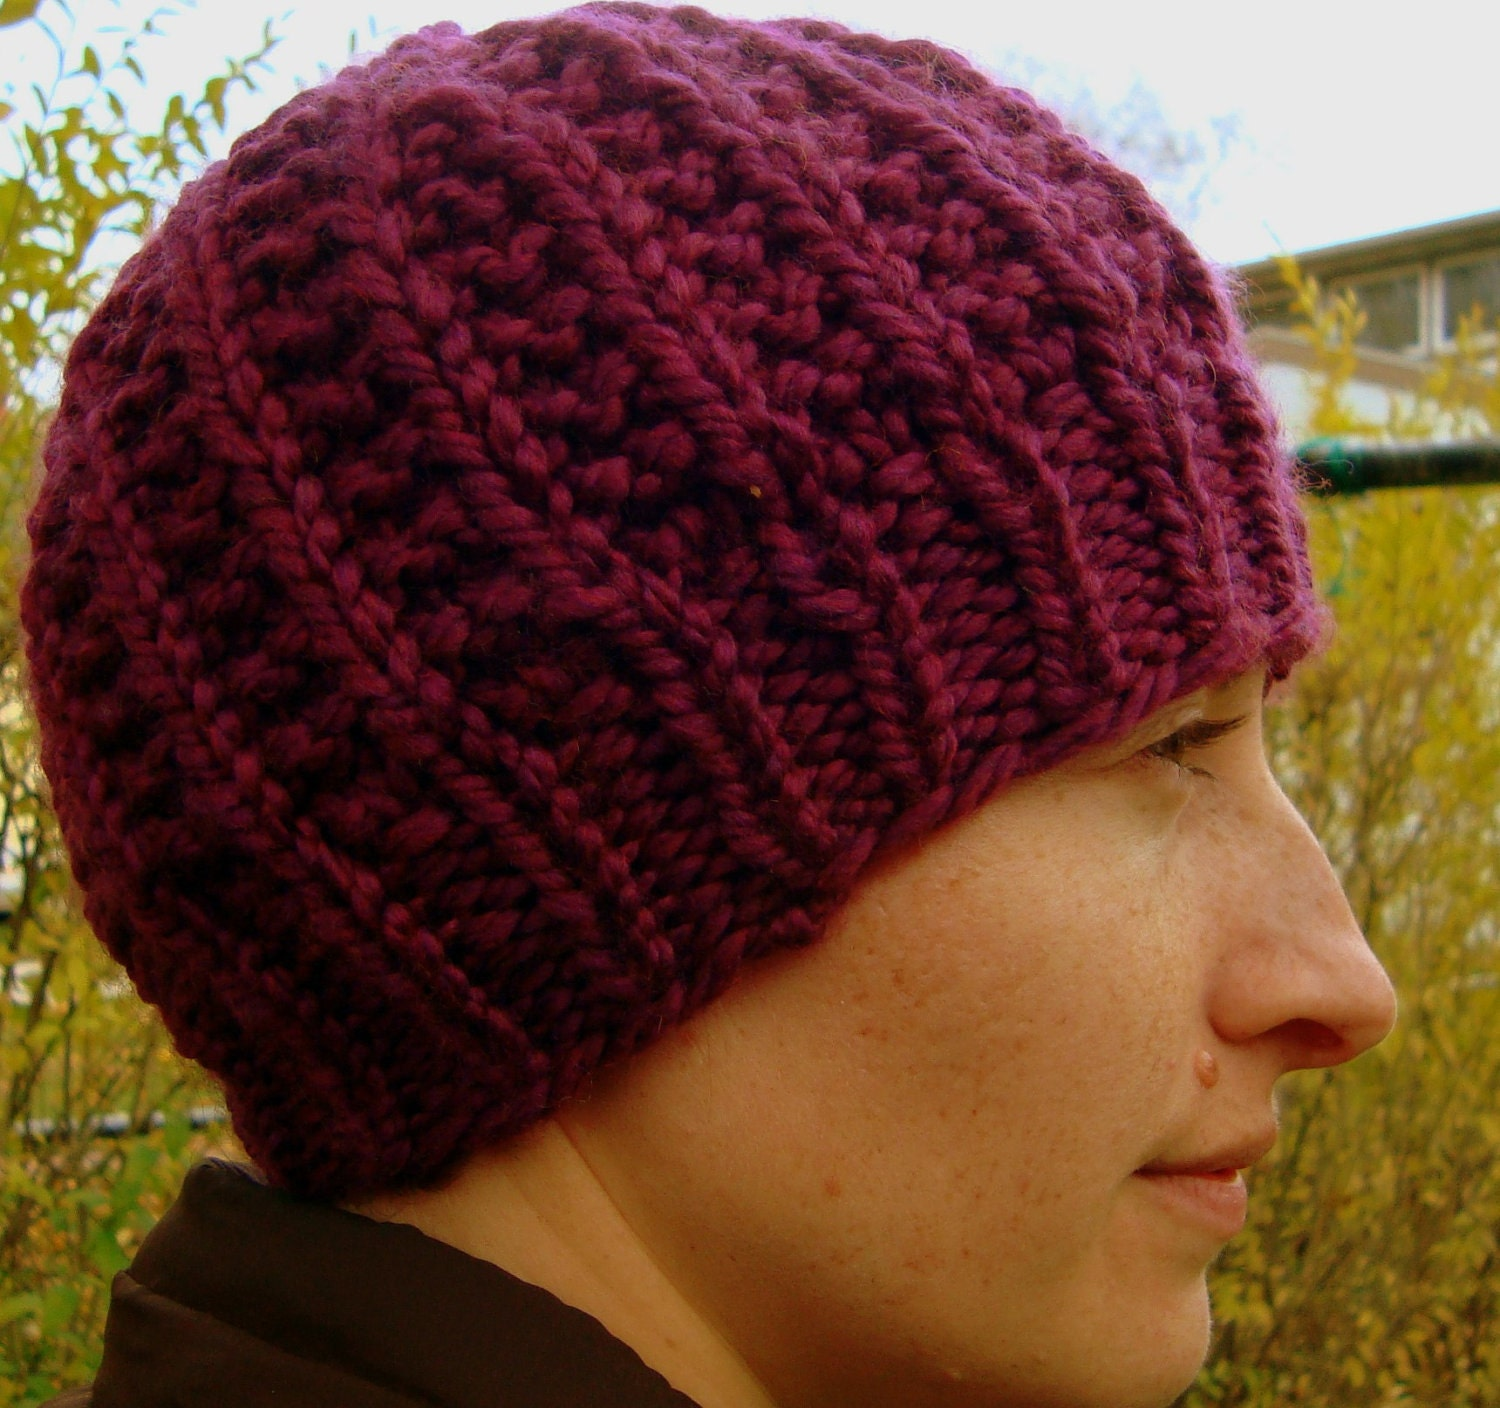 SALE Black Friday/Cyber Monday- Hand Knit Cozy Hat in Cranberry - KnitMomWi